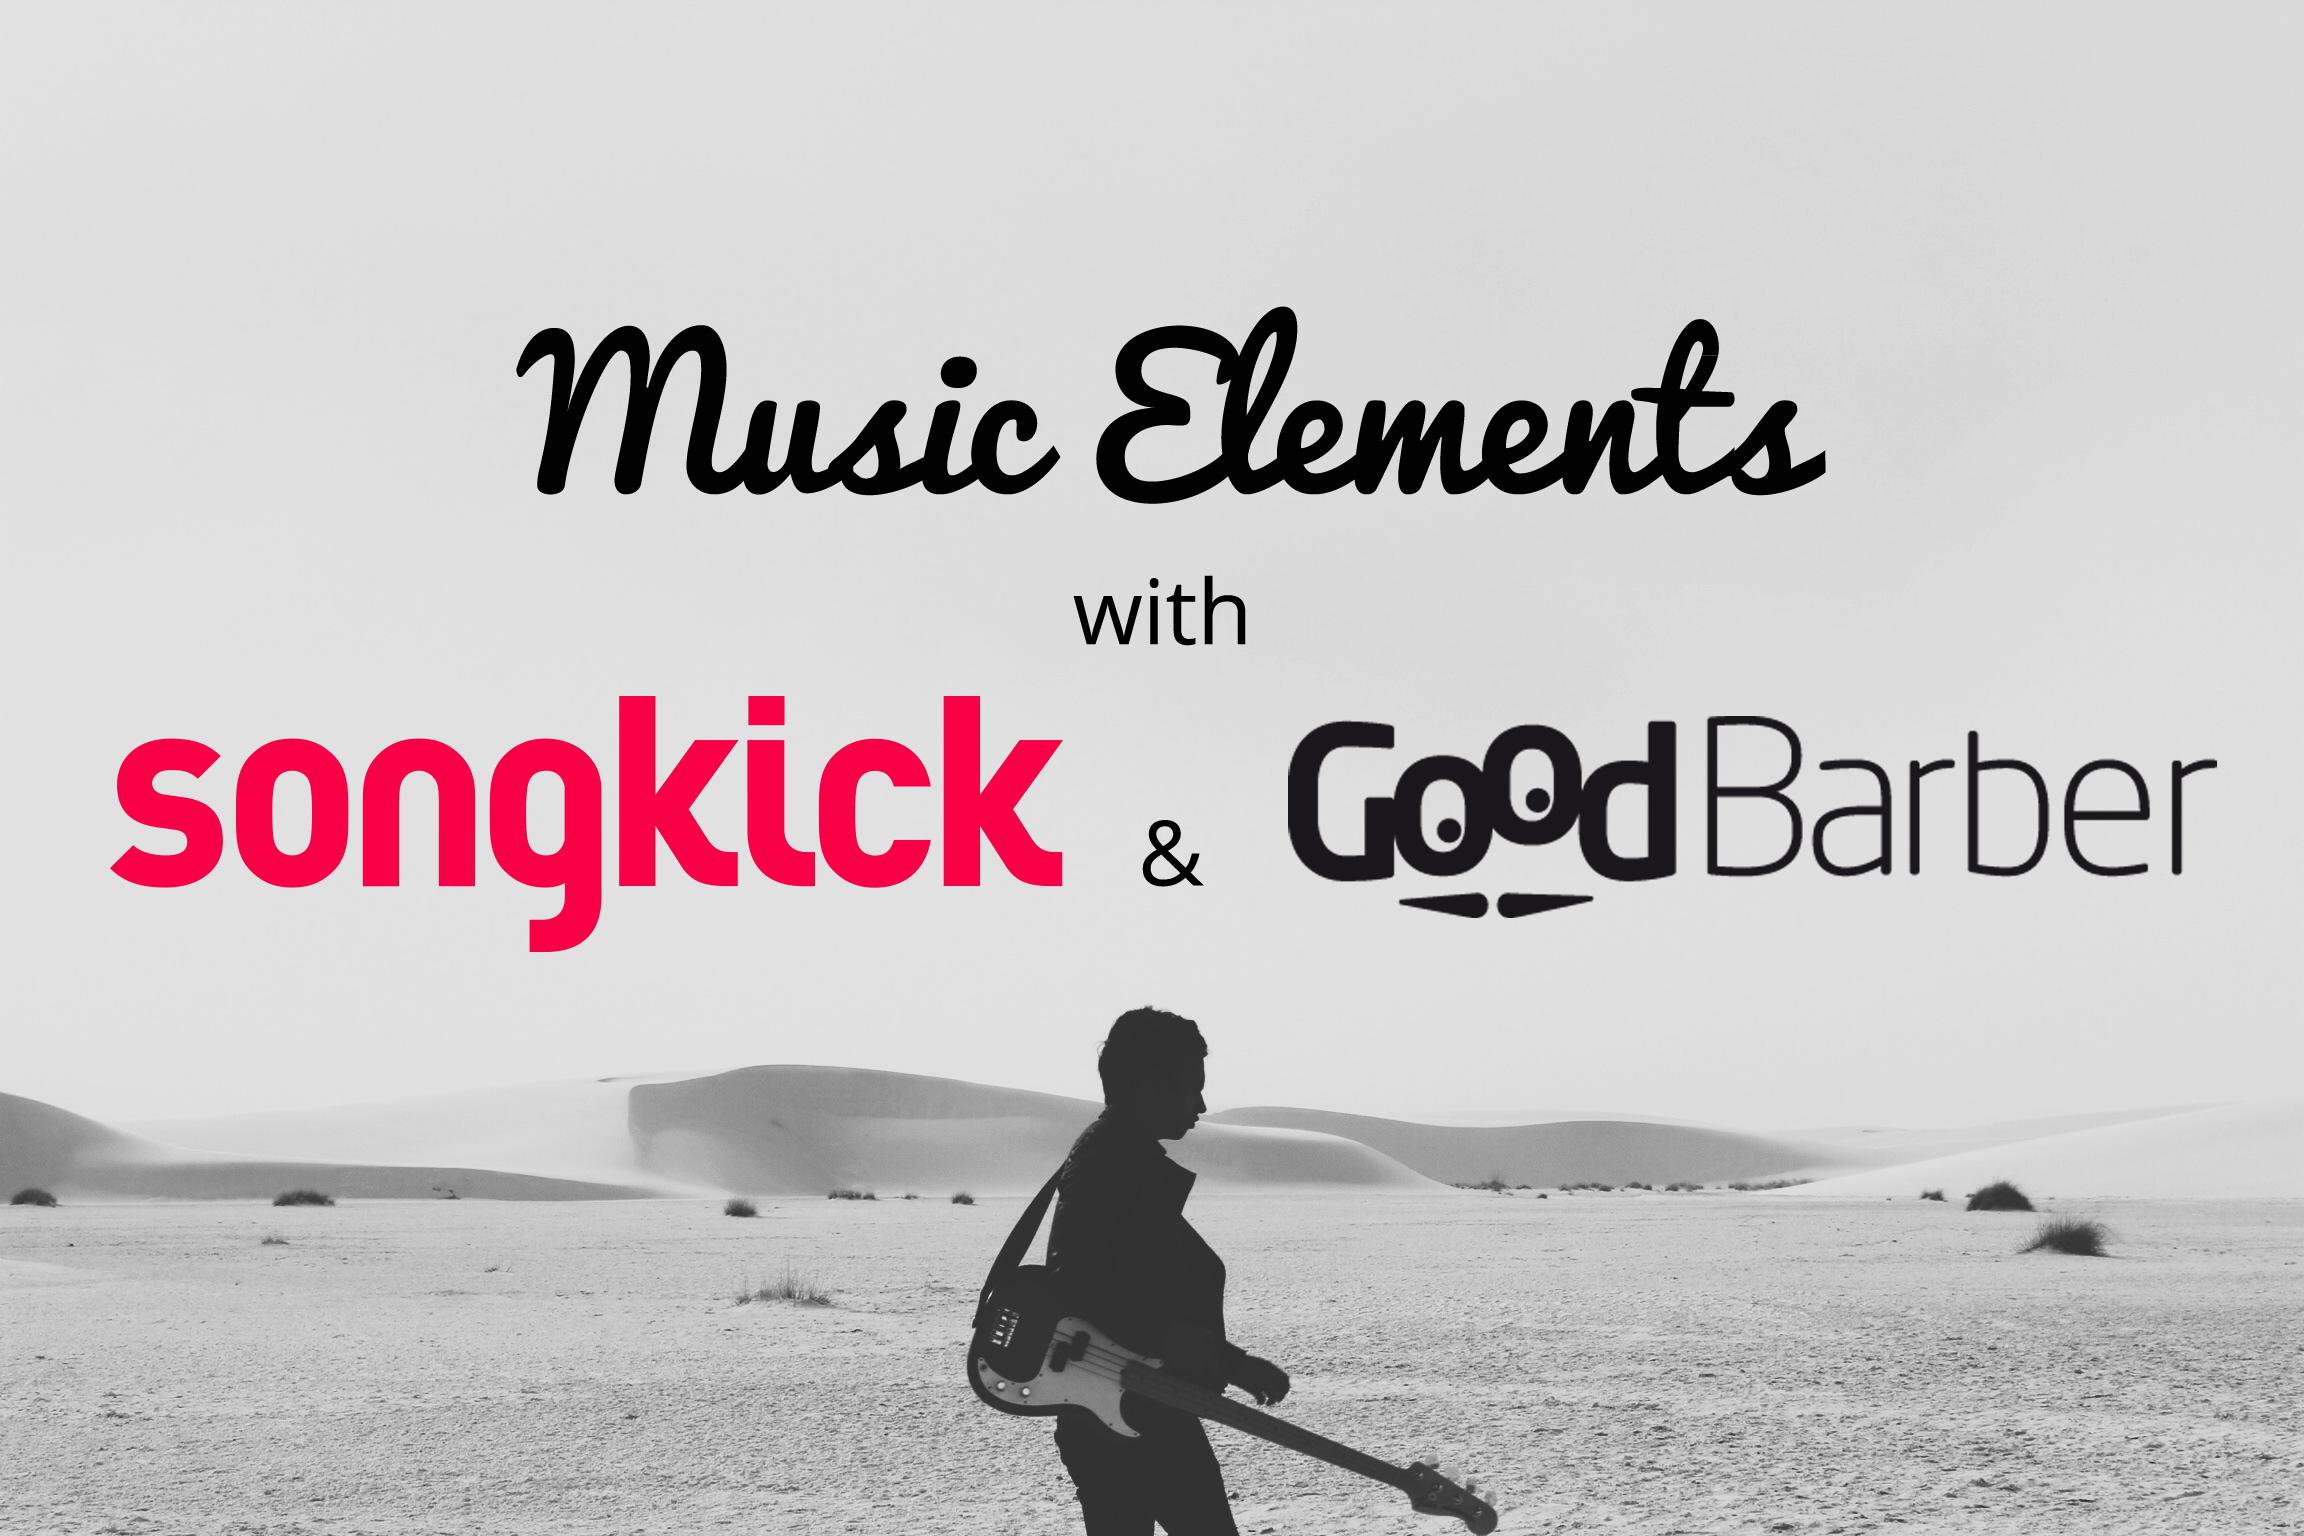 Songkick, the new music element of Beautiful Mobile Apps